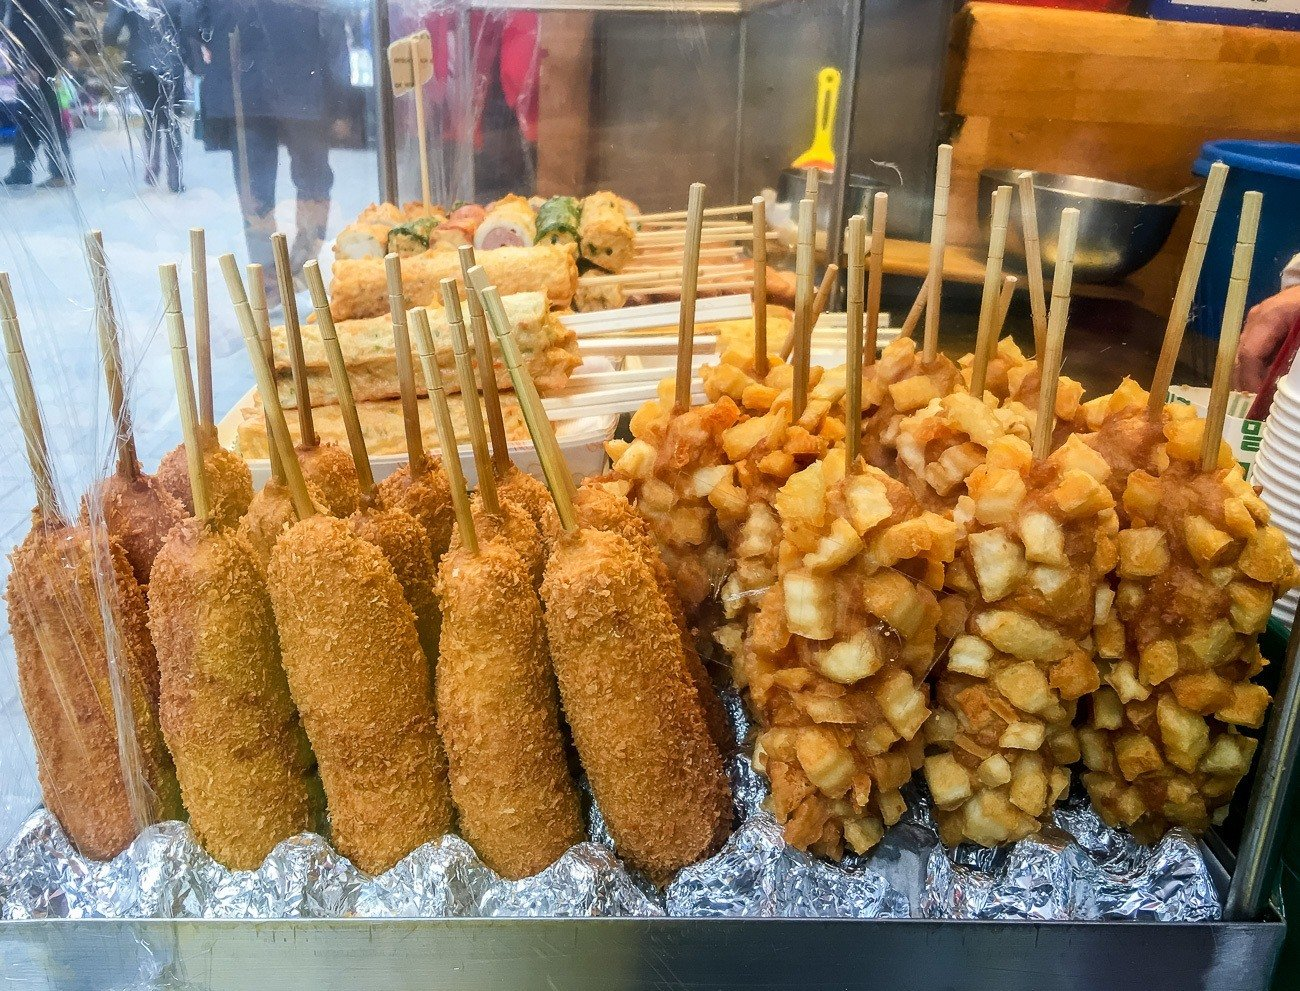 French fry covered corn dogs are a popular street food in Seoul.